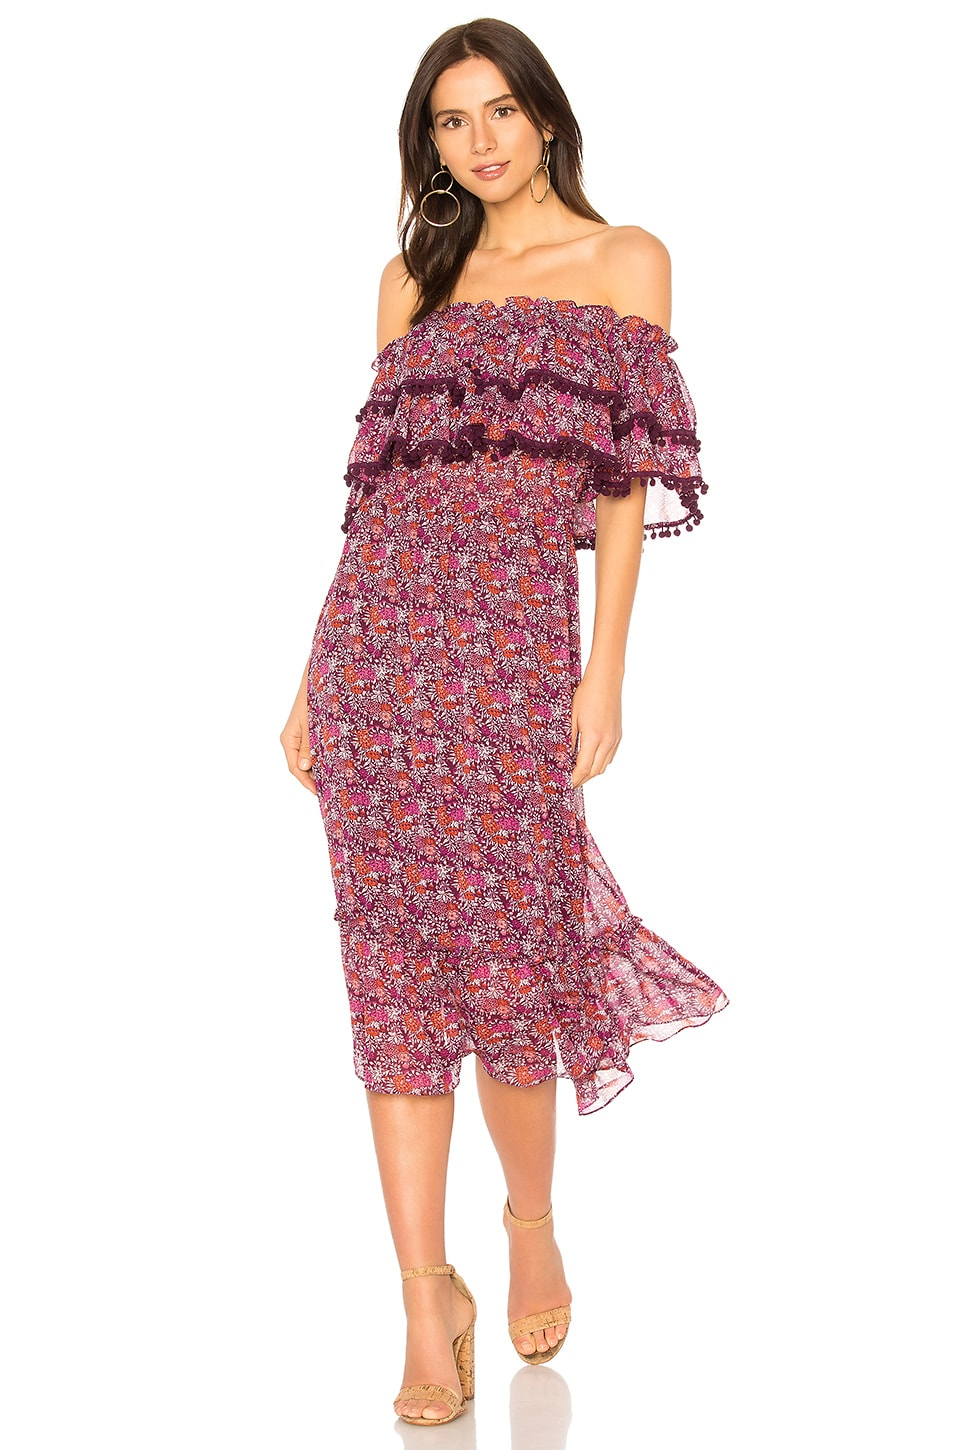 MISA Los Angeles Maribel Dress in Multi